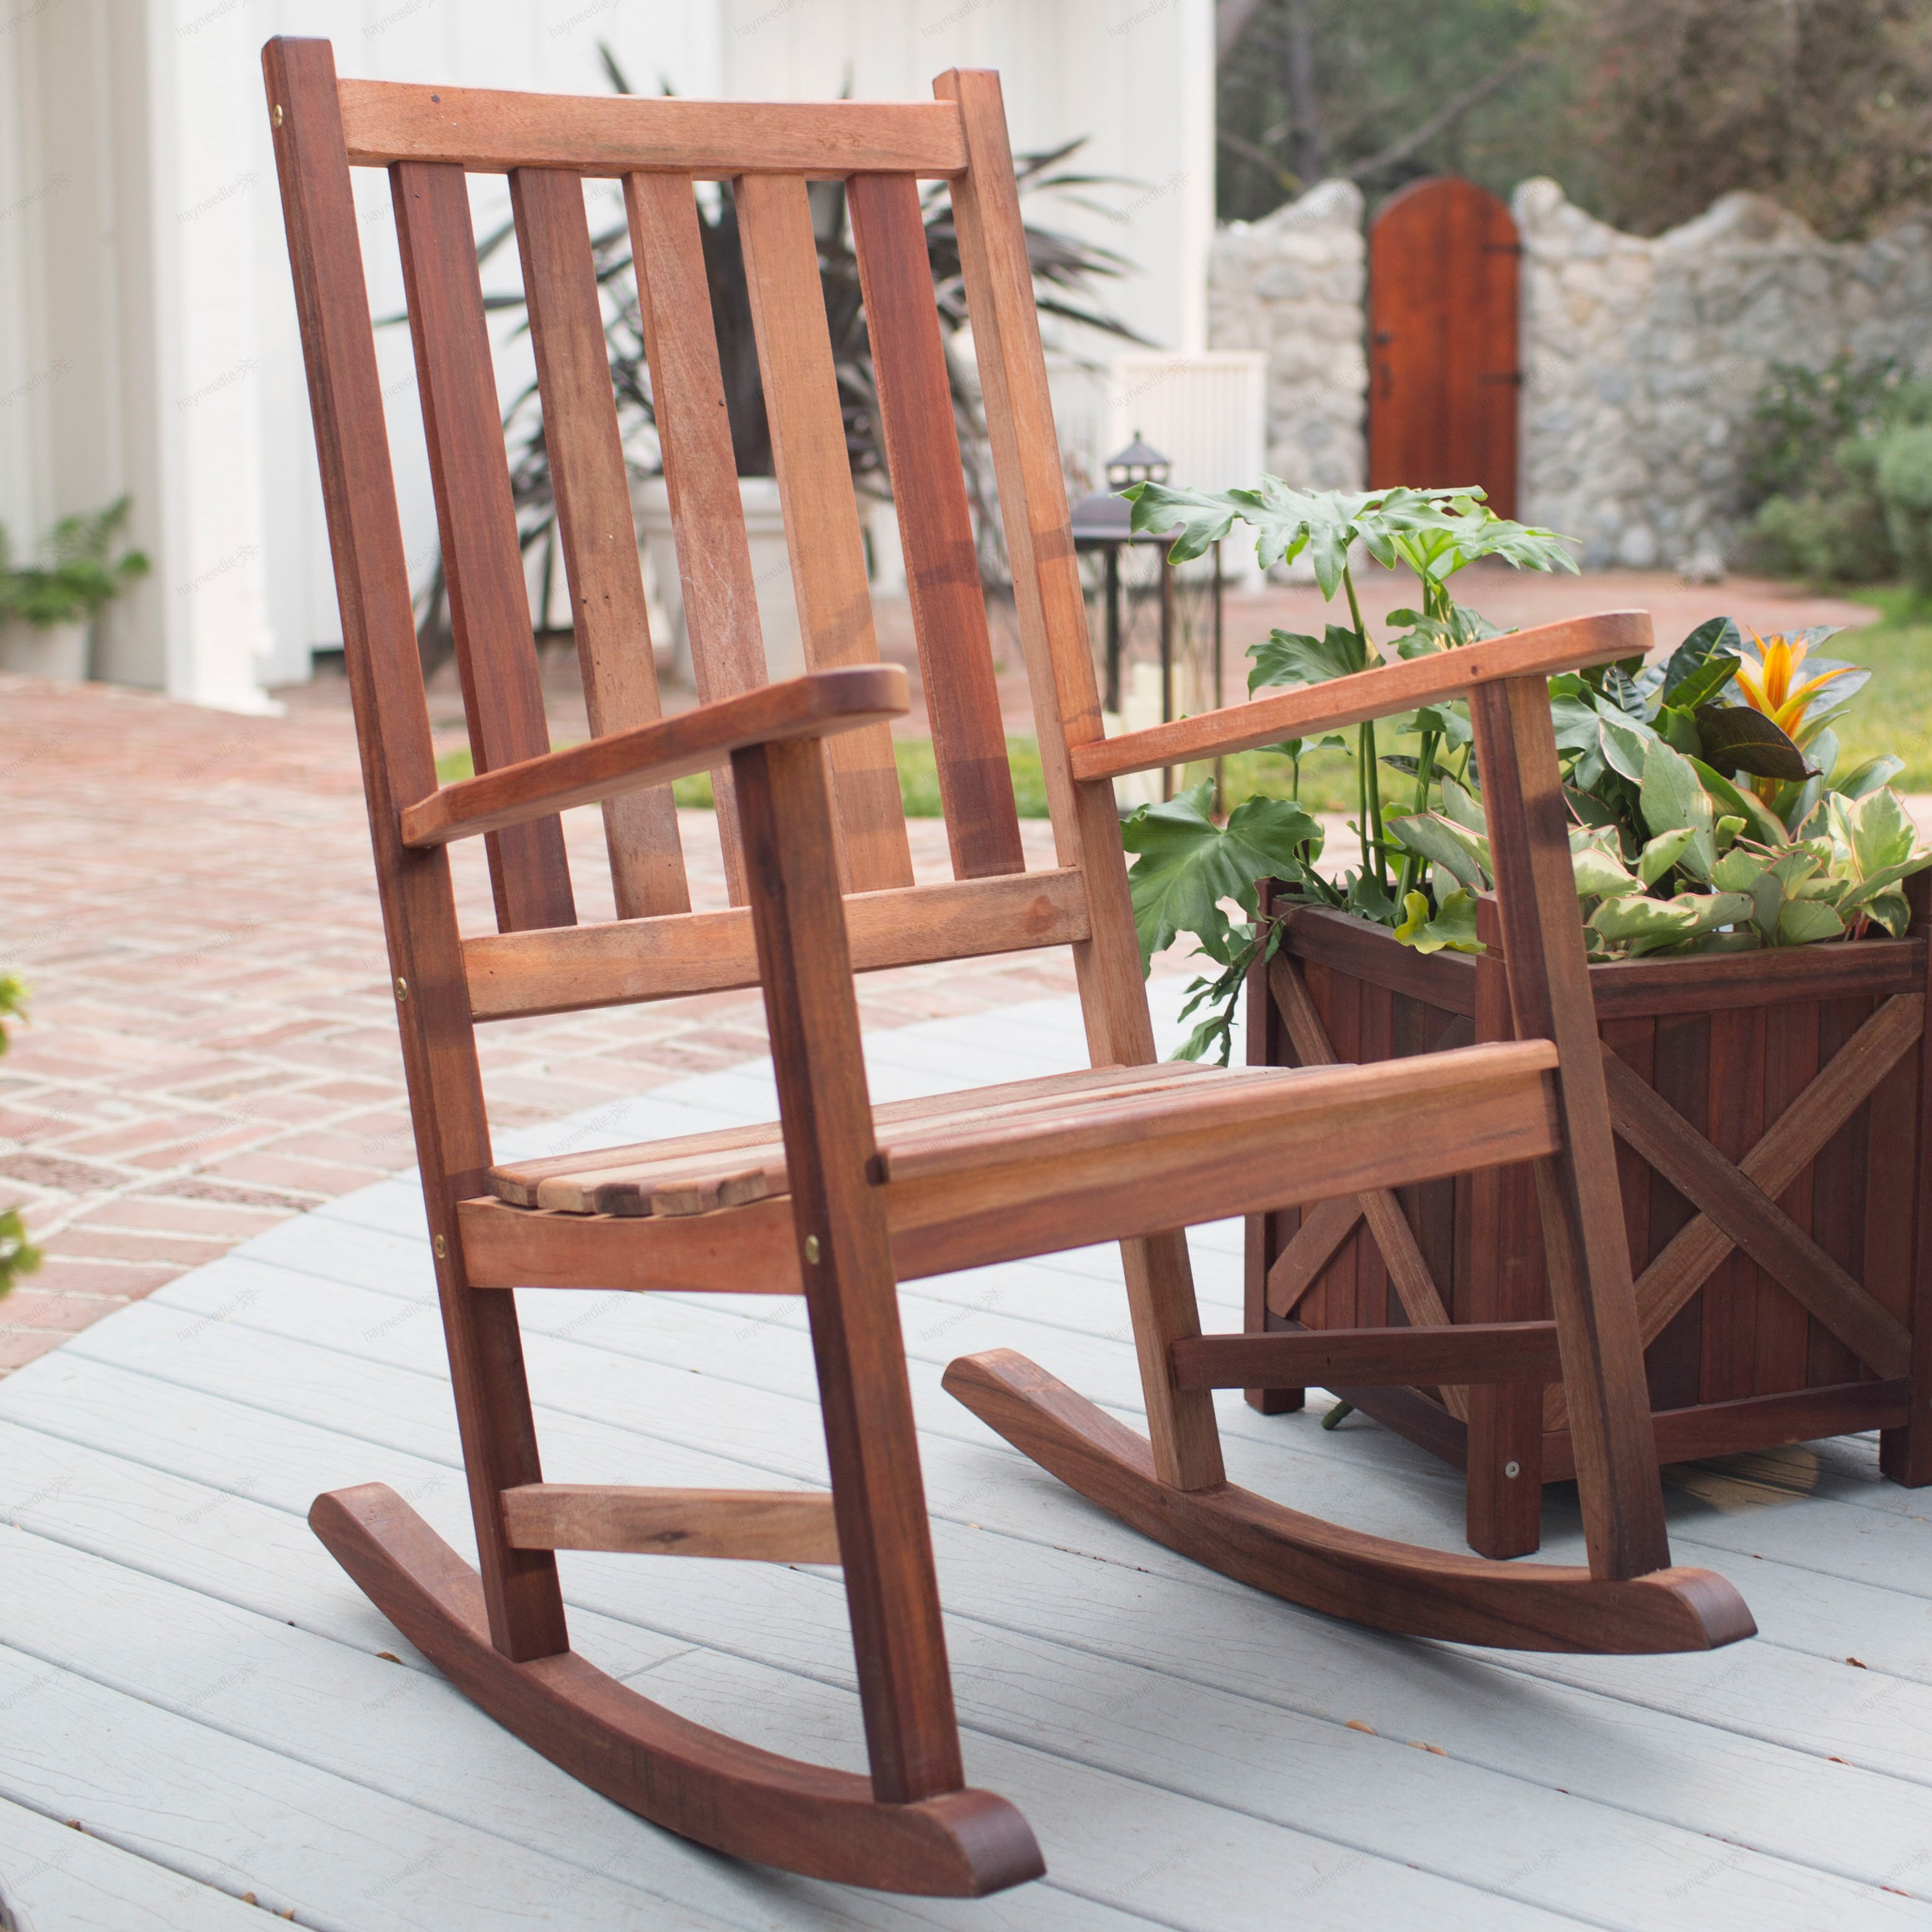 Furniture: Rustic Lowes Rocking Chairs With Outdoor Potted Pertaining To Traditional Wooden Porch Rocking Chairs (#7 of 20)